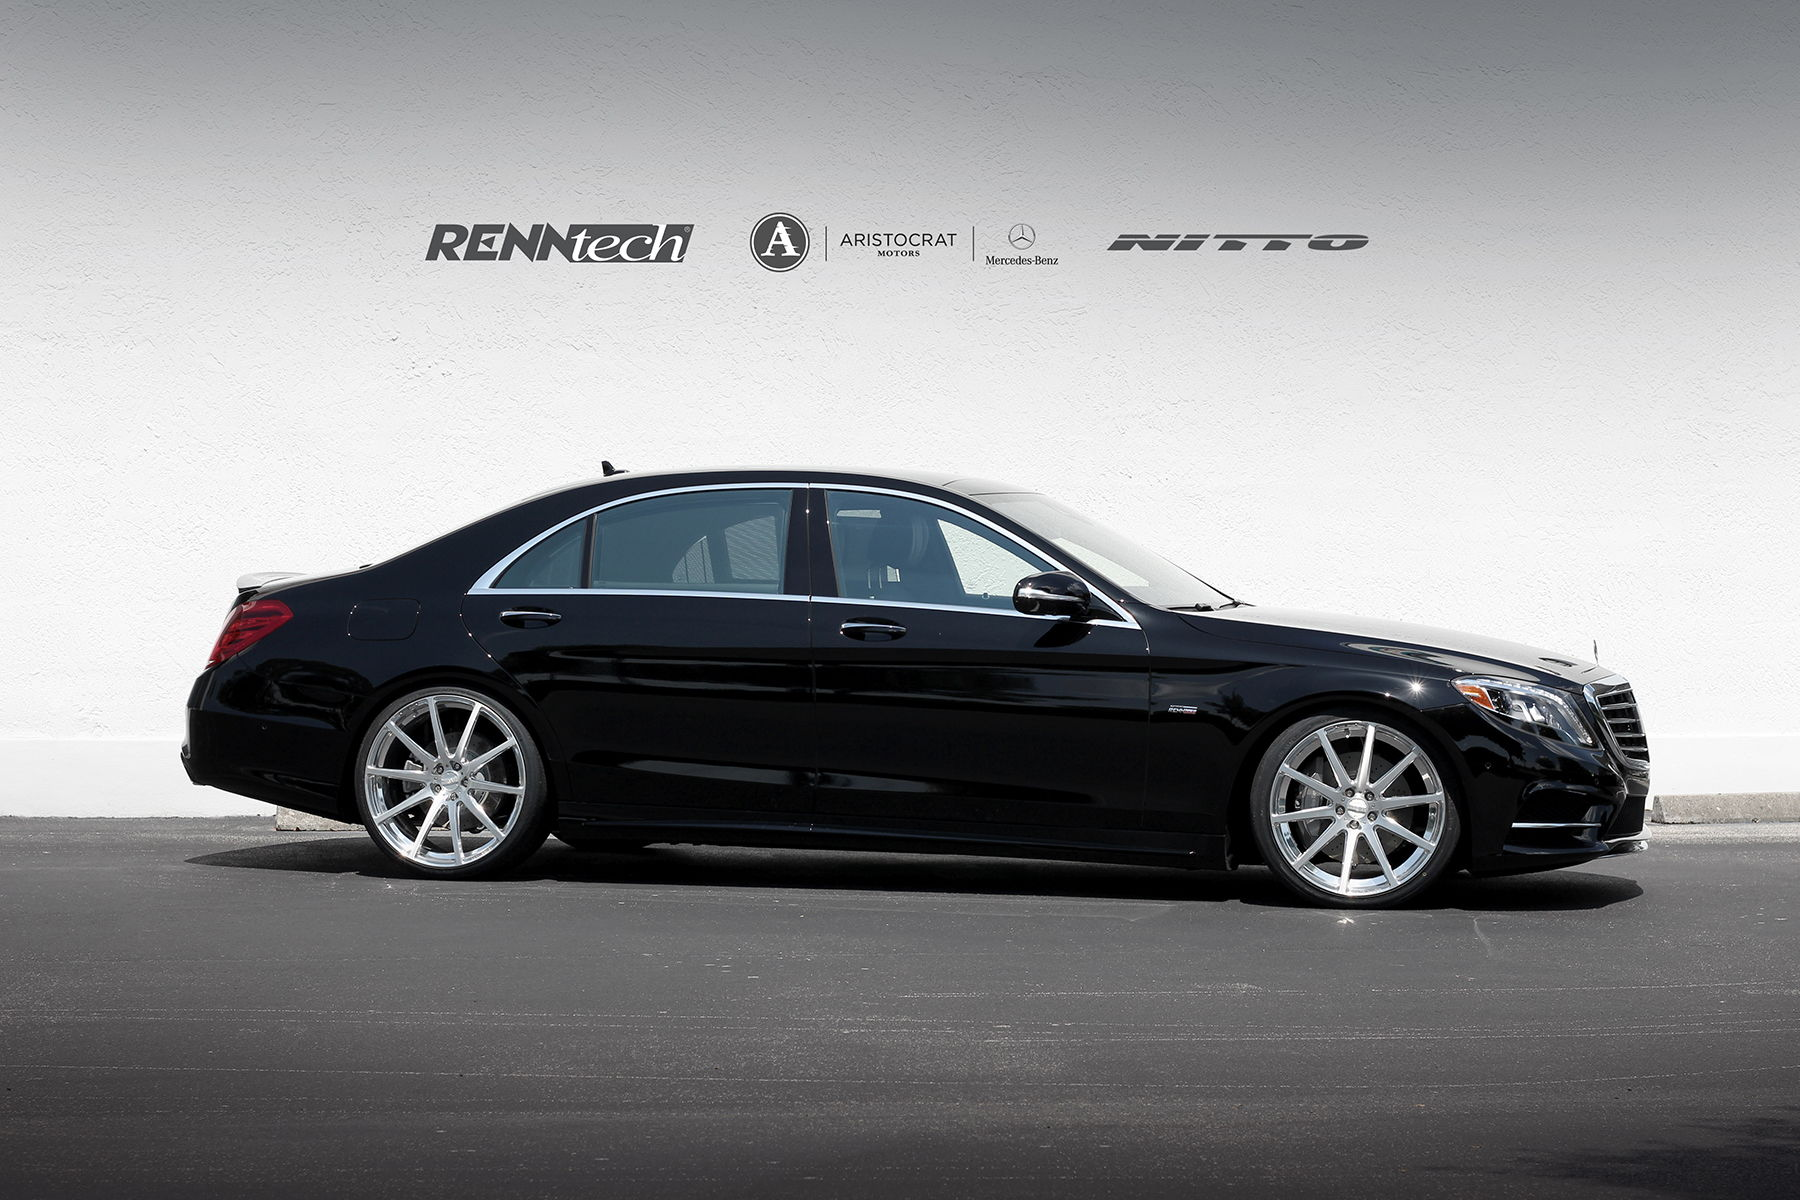 Mercedes benz s 550 renntech aristocrat for Aristocrat motors mercedes benz